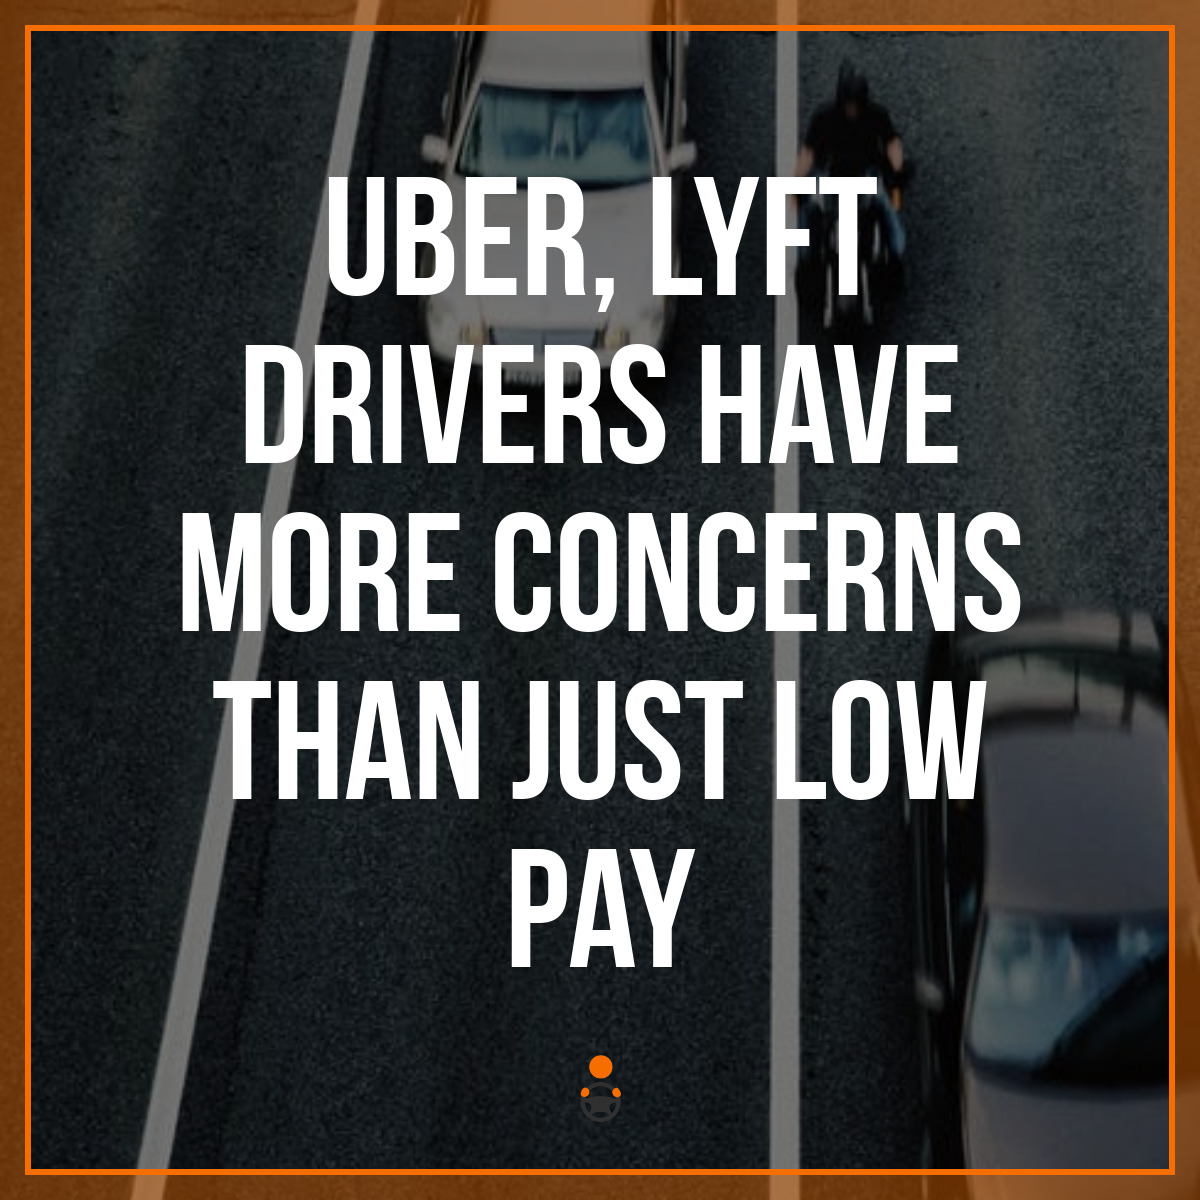 Uber, Lyft Drivers Have More Concerns Than Just Low Pay